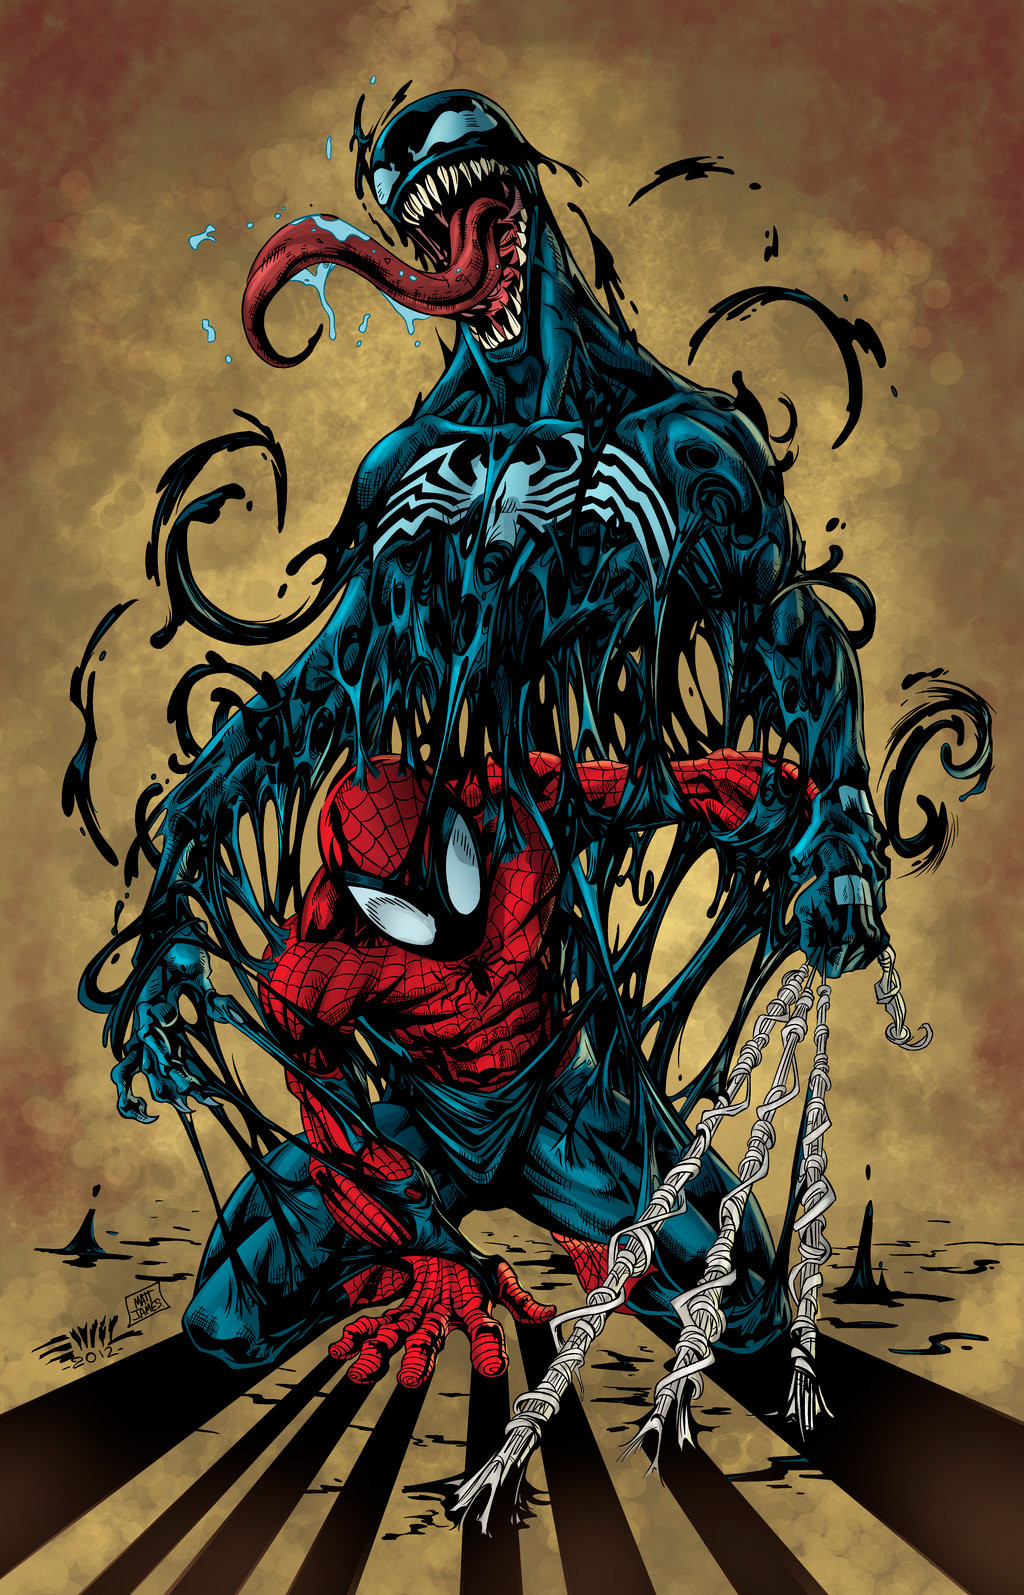 Matt james spiderman vs venom by snakebitartstudio db9wshs